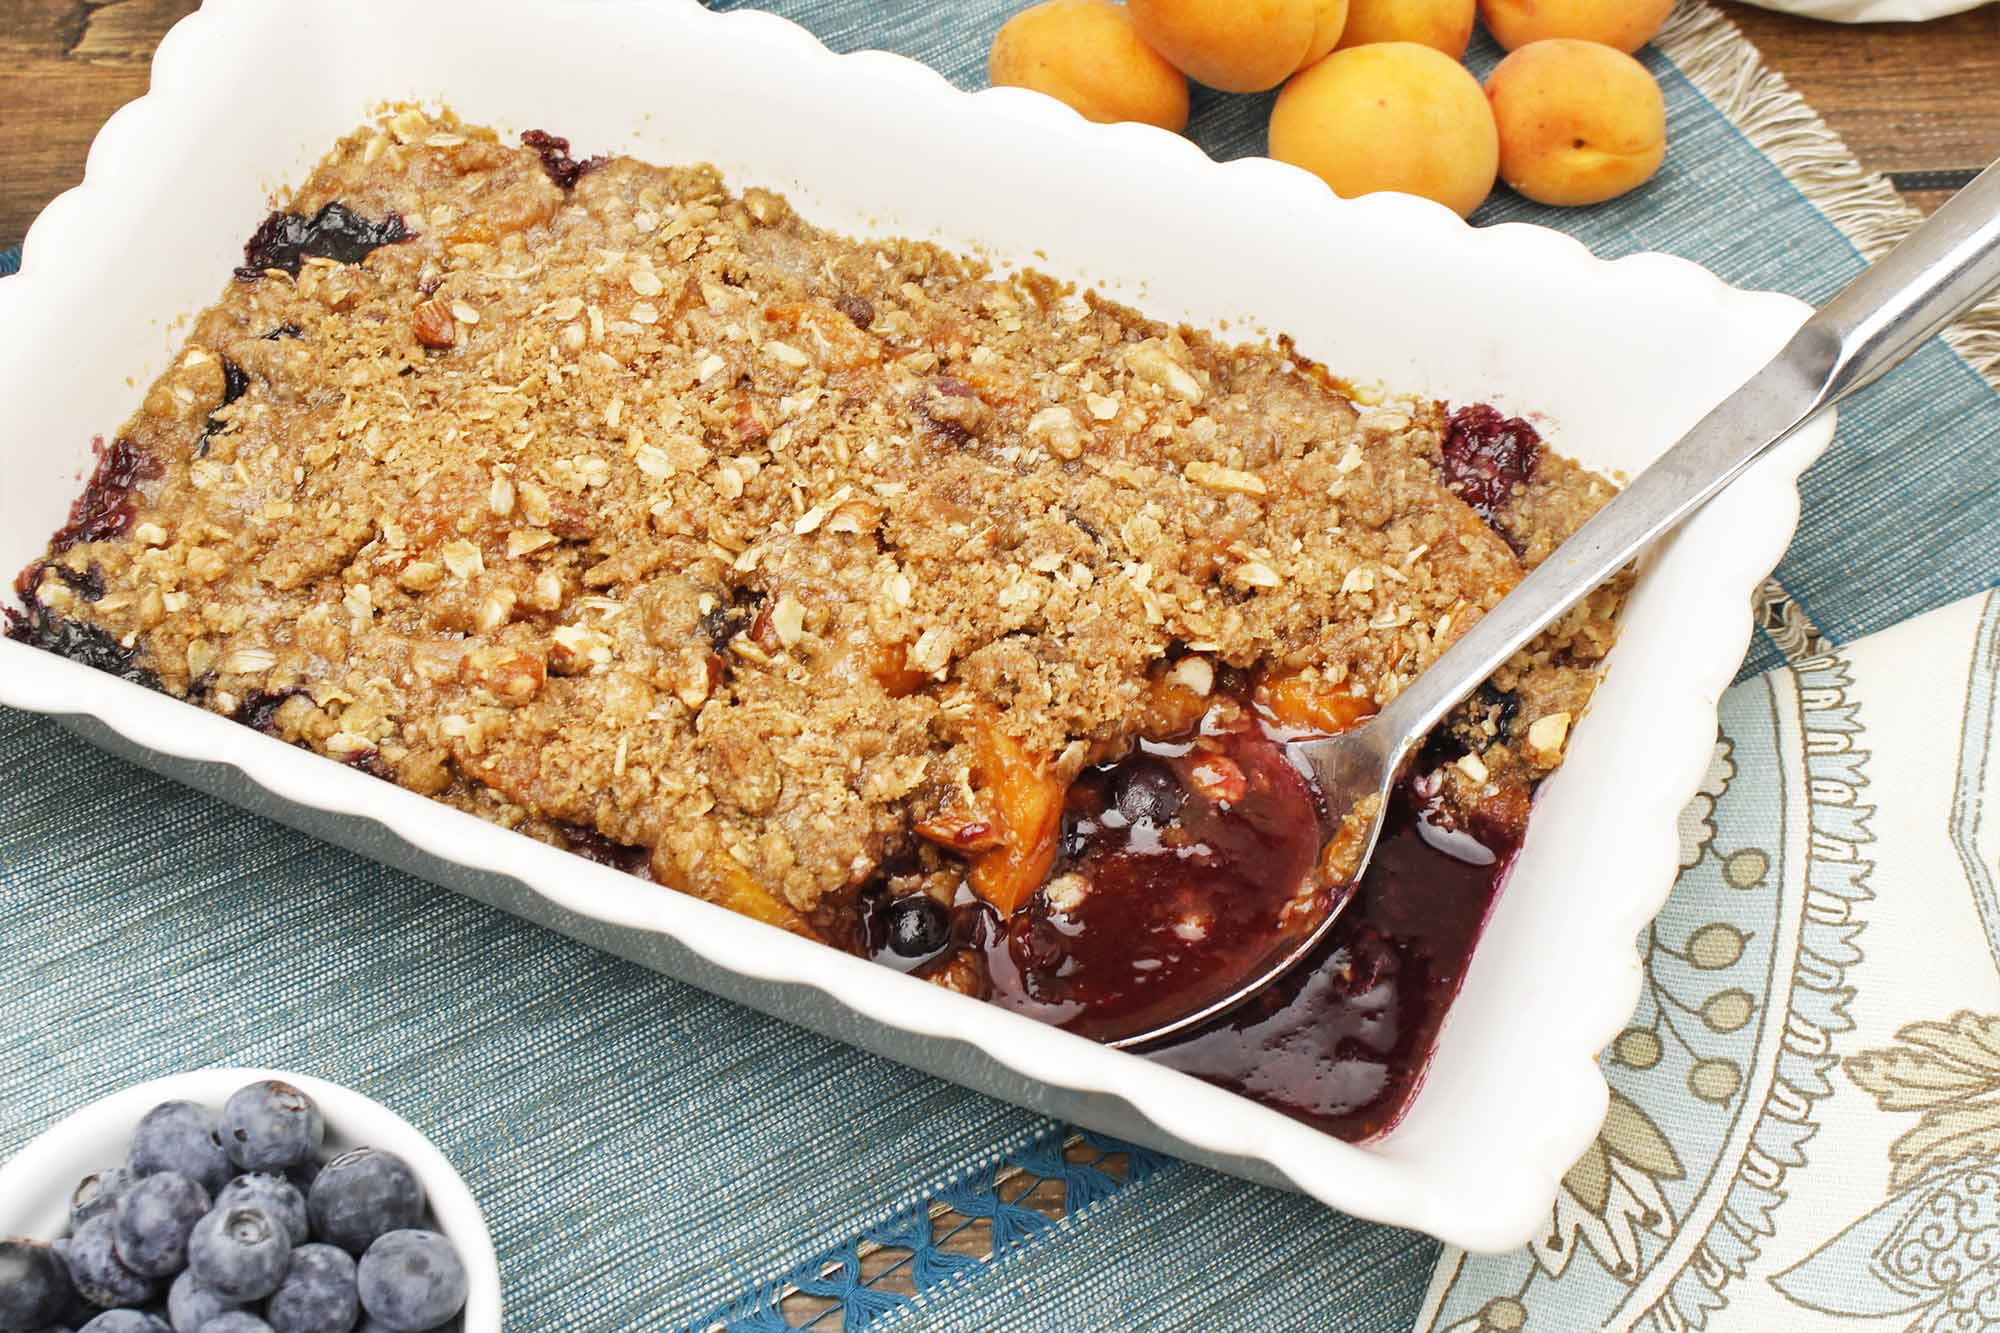 Apricot and Blueberry Crumble